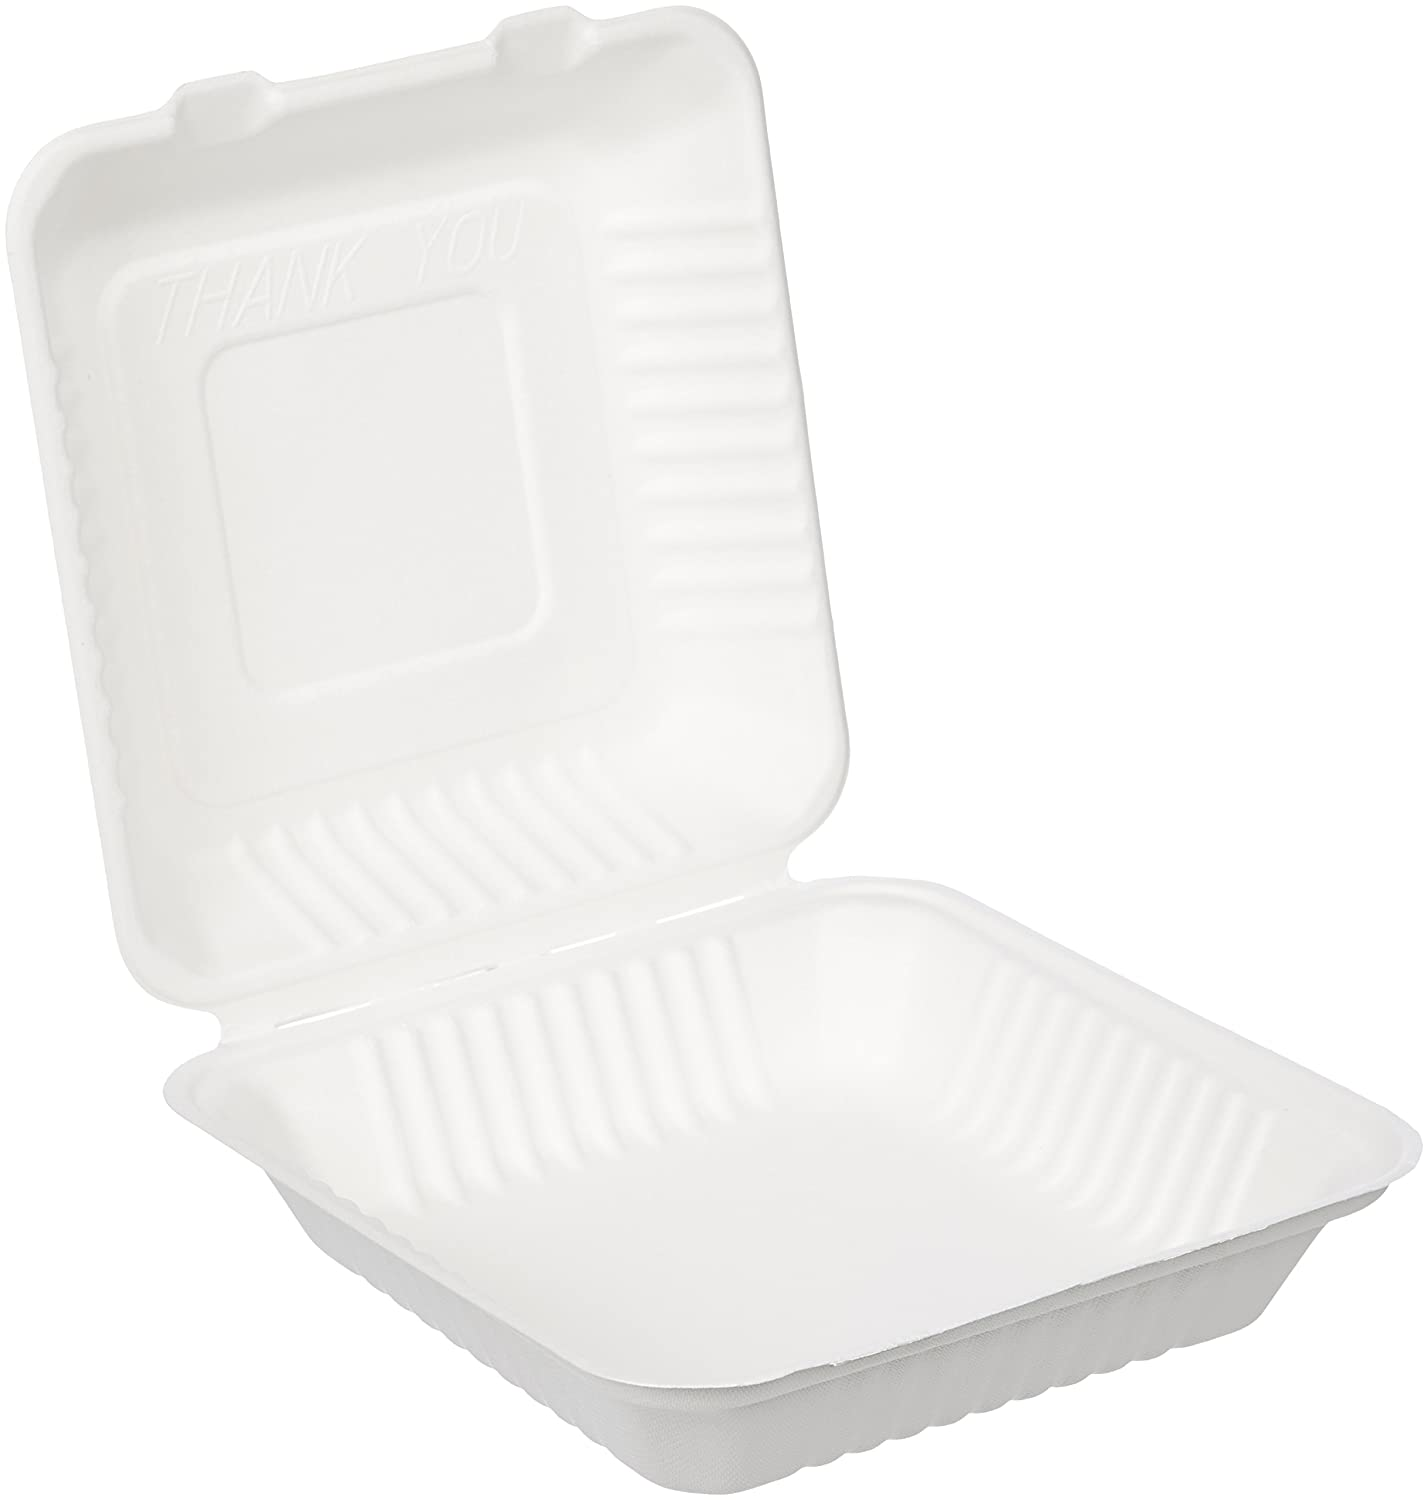 "AmazonBasics Compostable Clamshell Take-Out Food Container, 9"" x 9"" x 3.19"", Pack of 300"